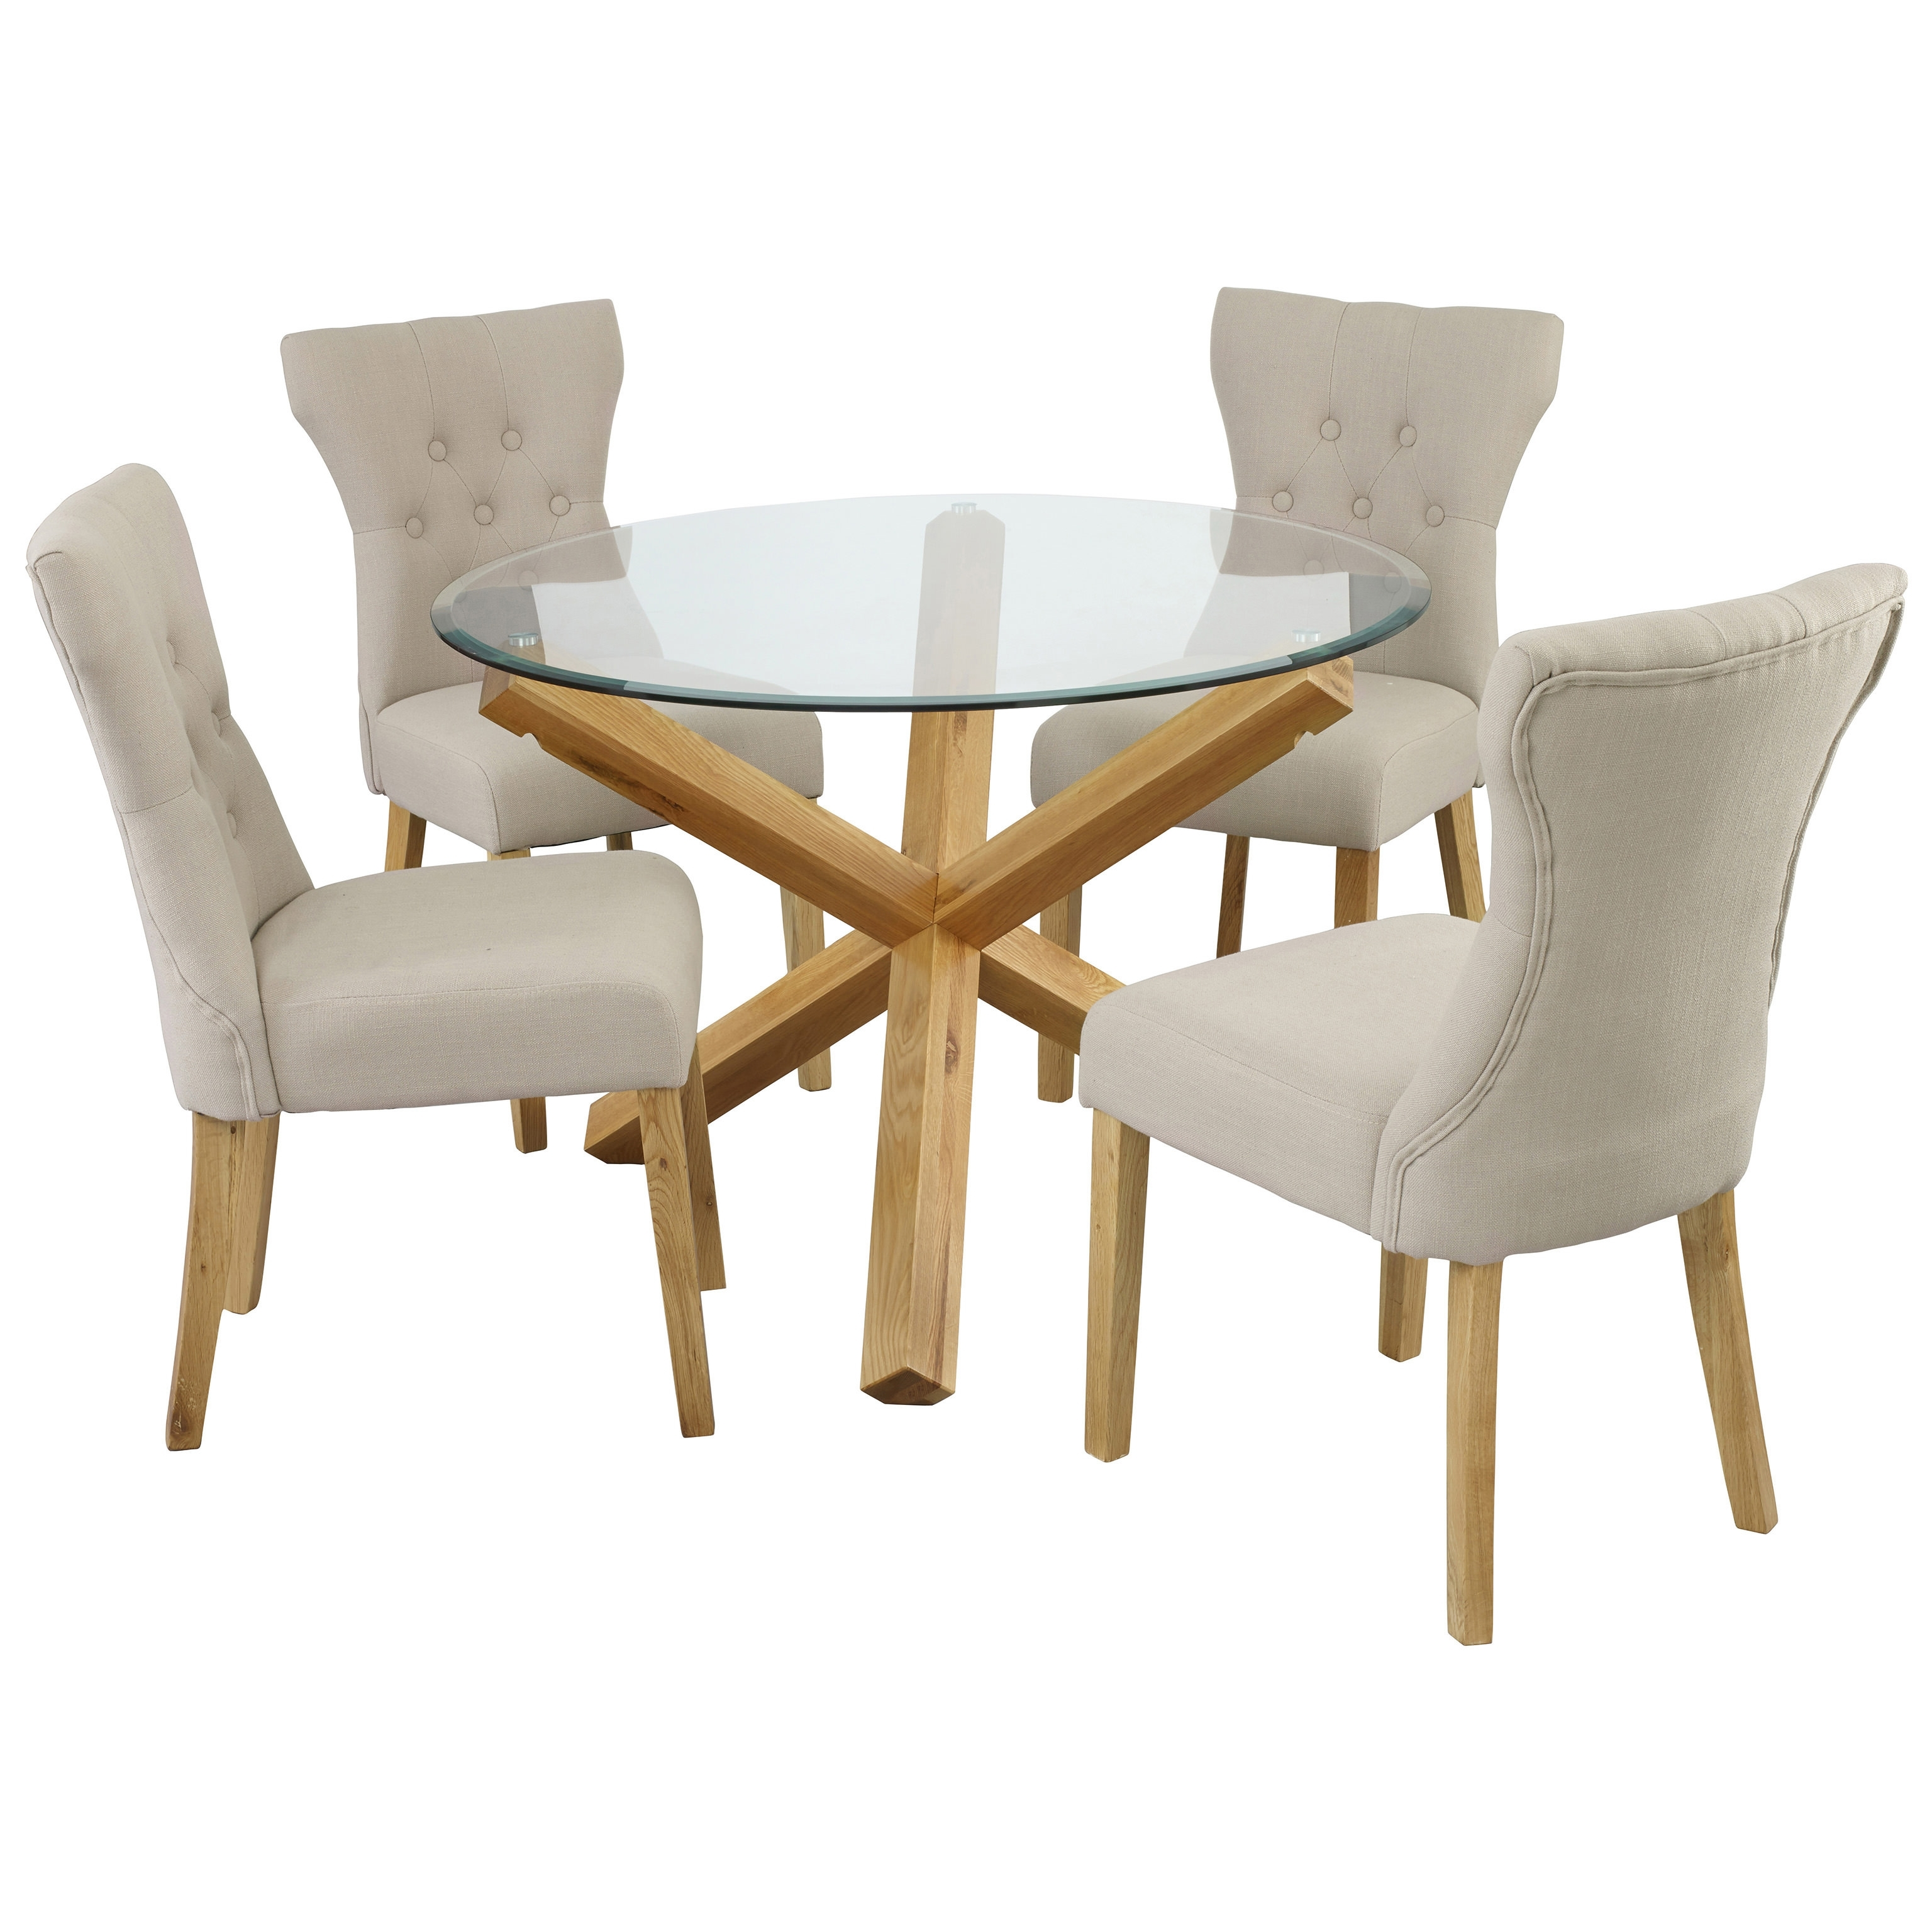 Fashionable Oak & Glass Round Dining Table And Chair Set With 4 Fabric Seats In Glass Dining Tables With Oak Legs (View 4 of 25)